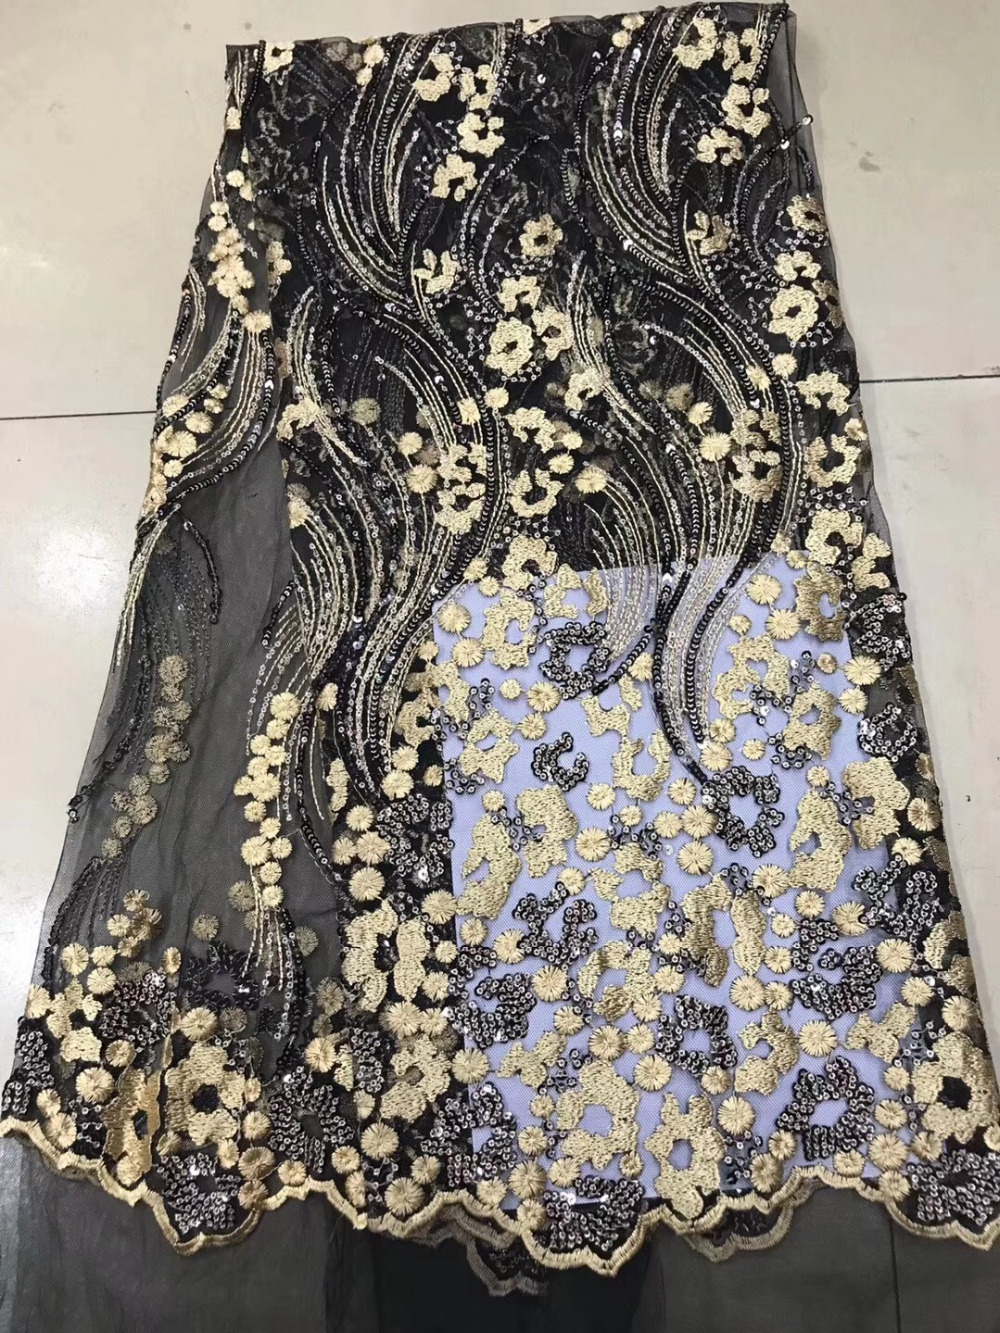 2018 Wedding Gold Sequence Nigerian Lace Fabric Bridal Fashion African French Lace Fabric 5Yards Tulle Mesh Net Lace Materials2018 Wedding Gold Sequence Nigerian Lace Fabric Bridal Fashion African French Lace Fabric 5Yards Tulle Mesh Net Lace Materials